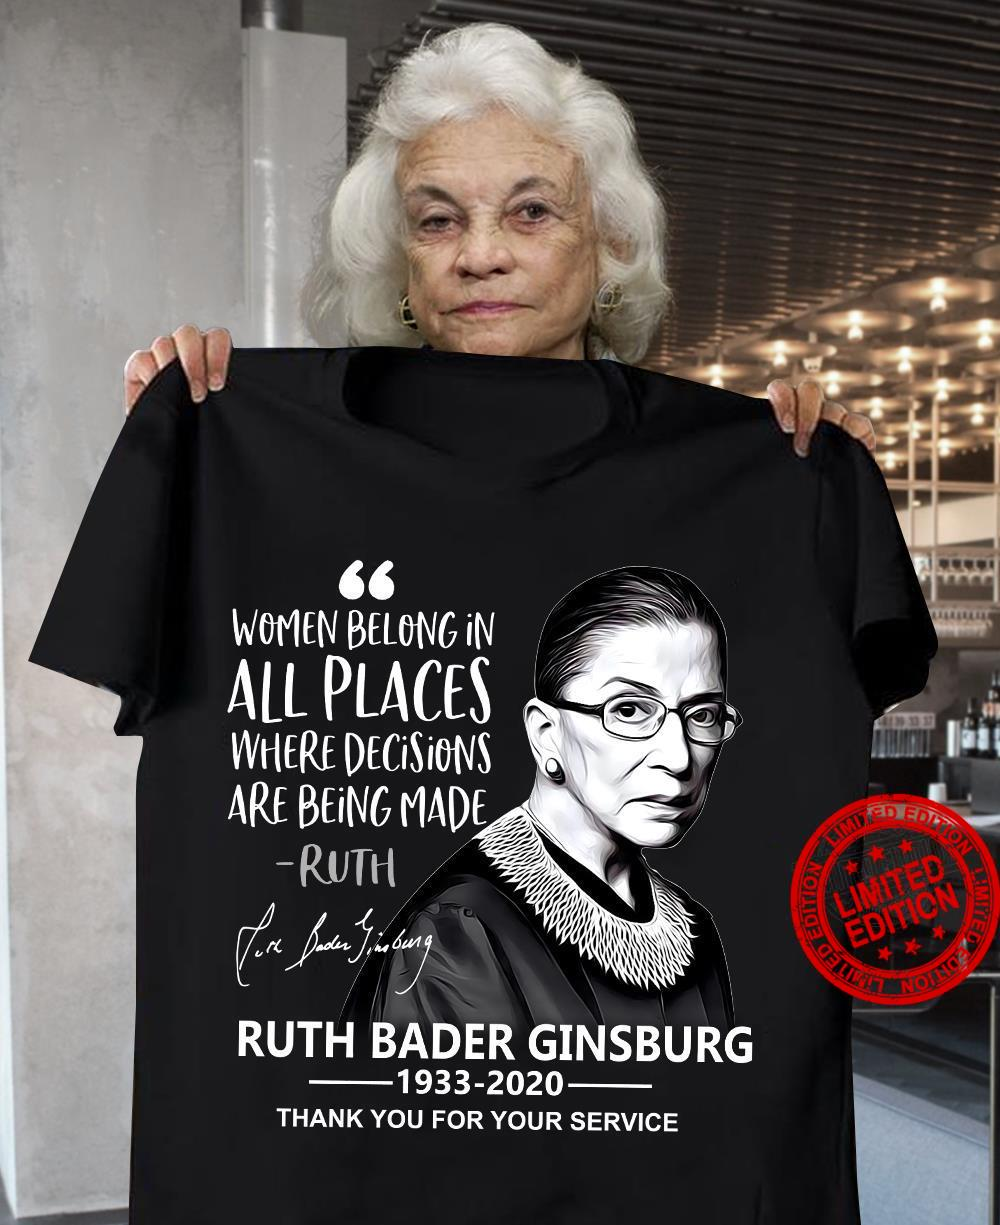 Women Belong In All Places Where Decisions Are Being Made Ruth Bader Ginsburg 1933-2020 Shirt